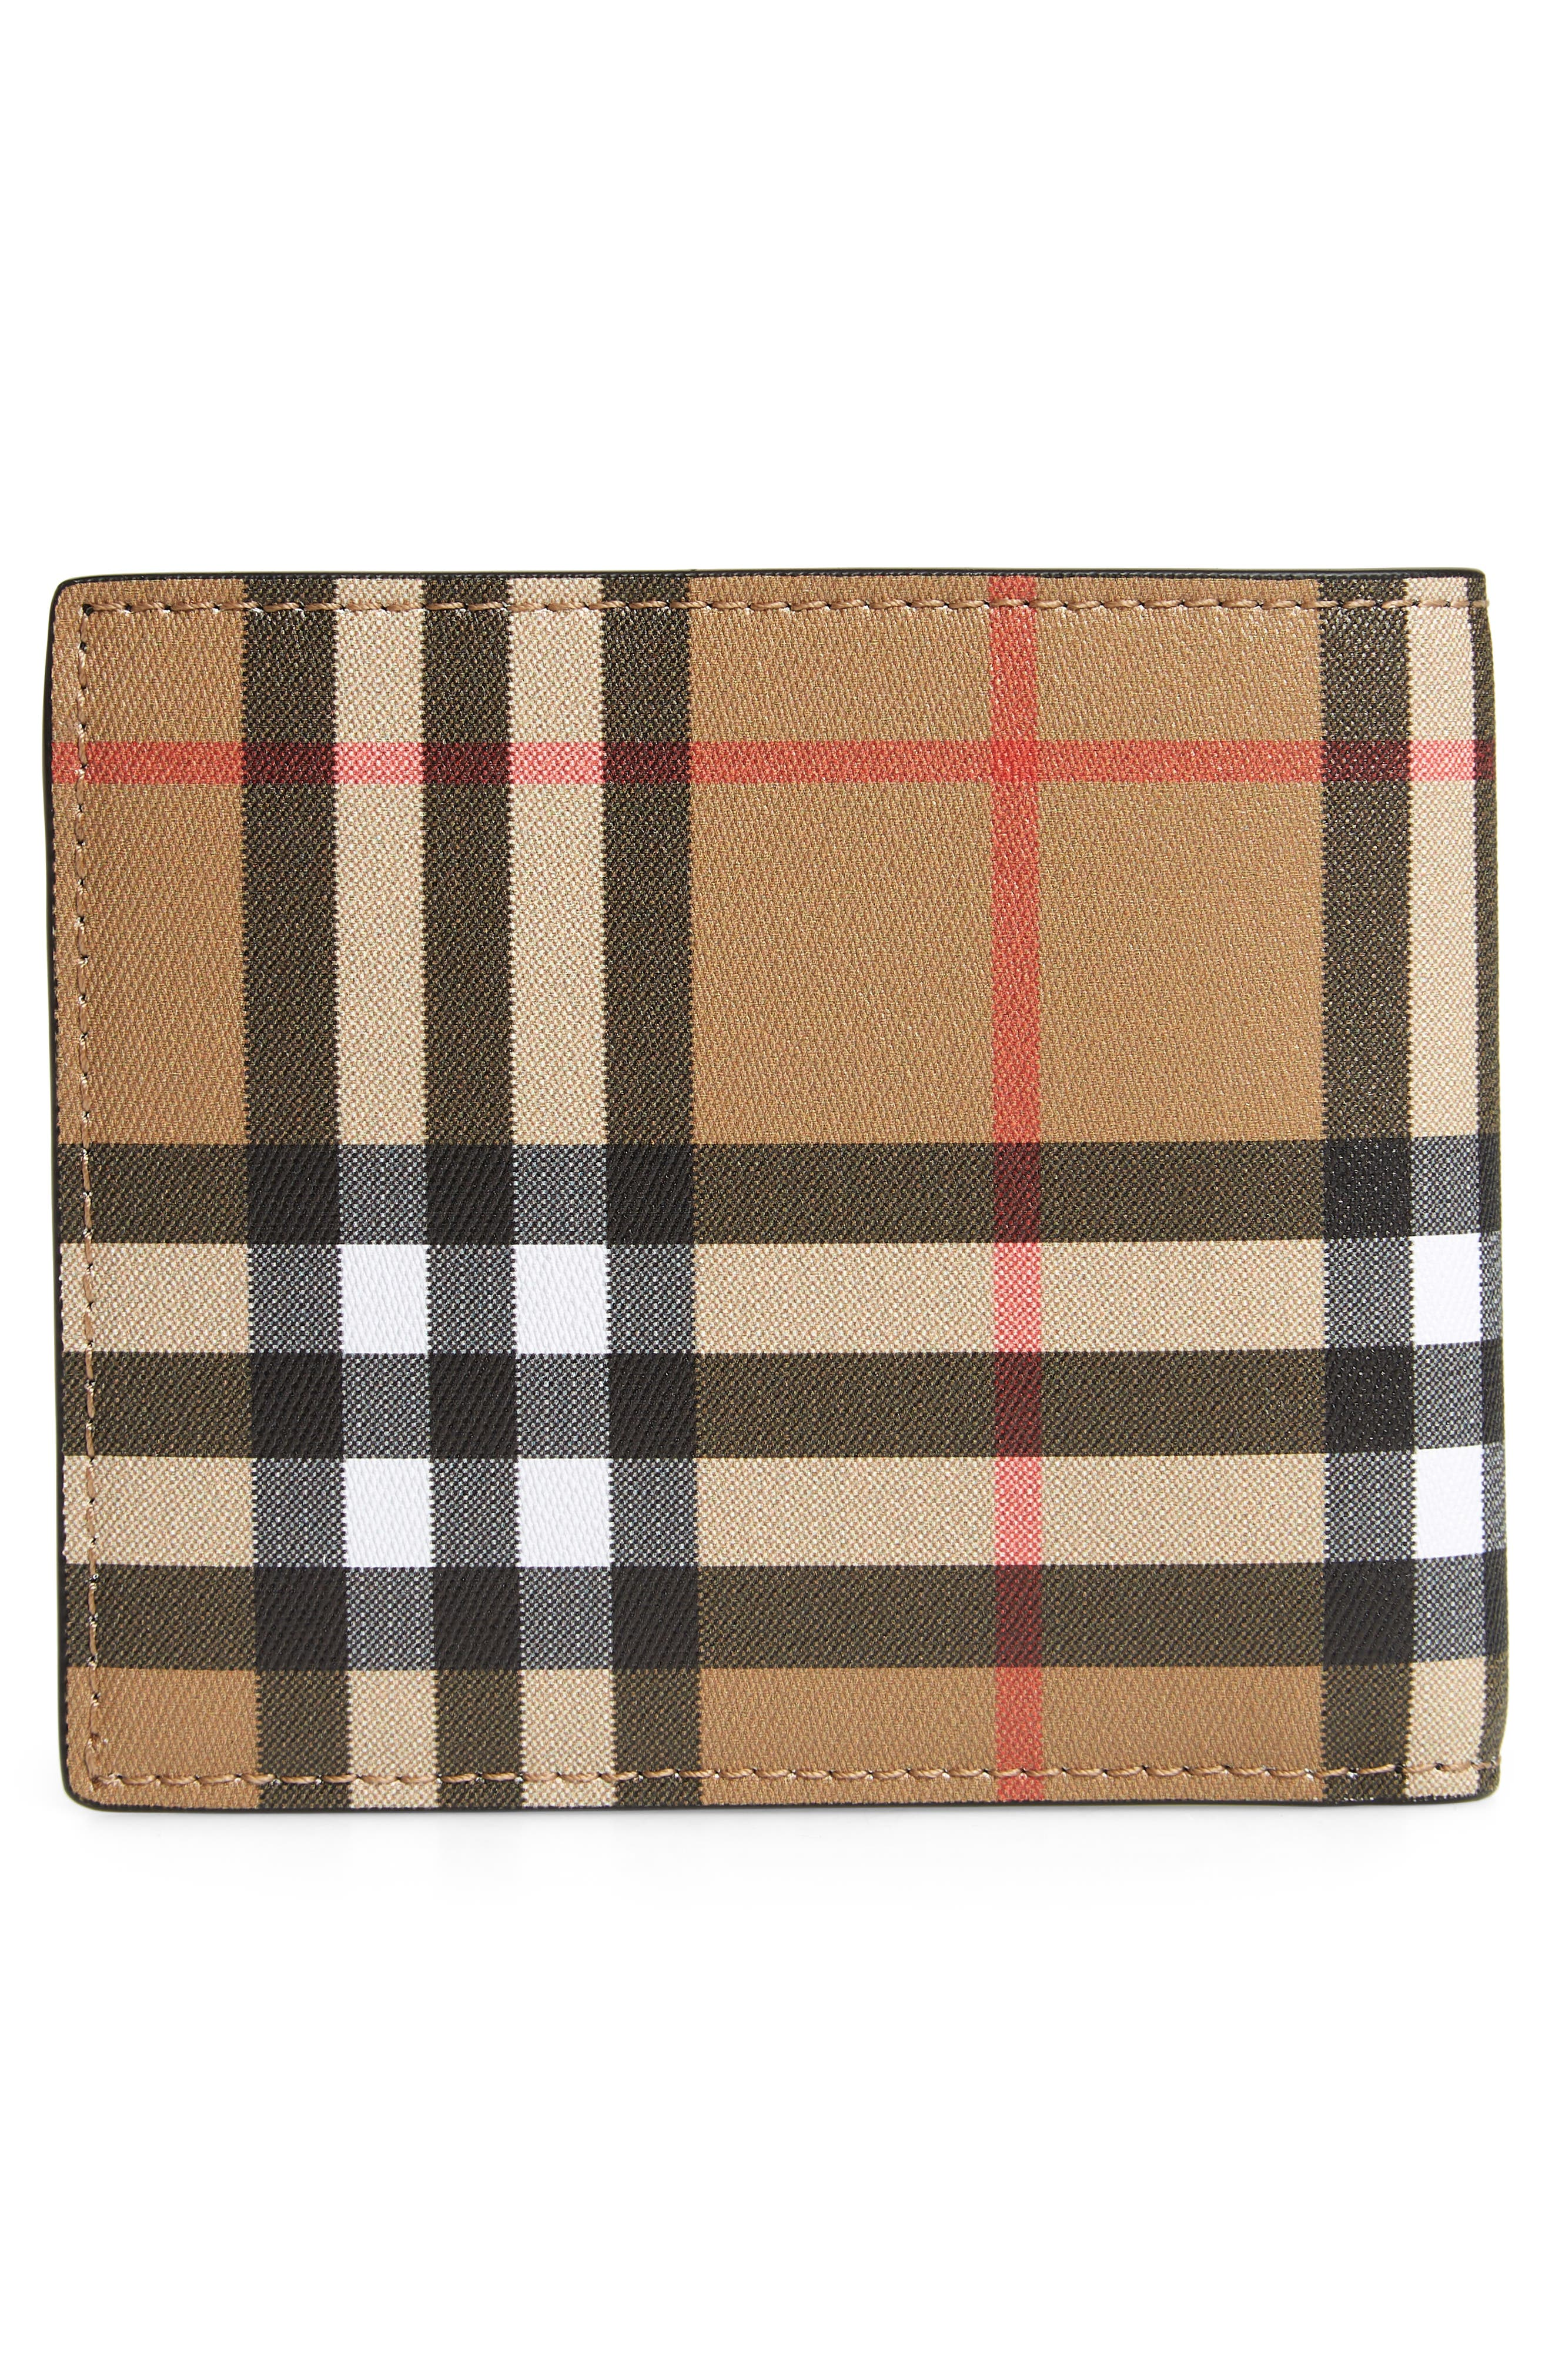 BURBERRY, Horseferry Leather Wallet, Alternate thumbnail 3, color, 001